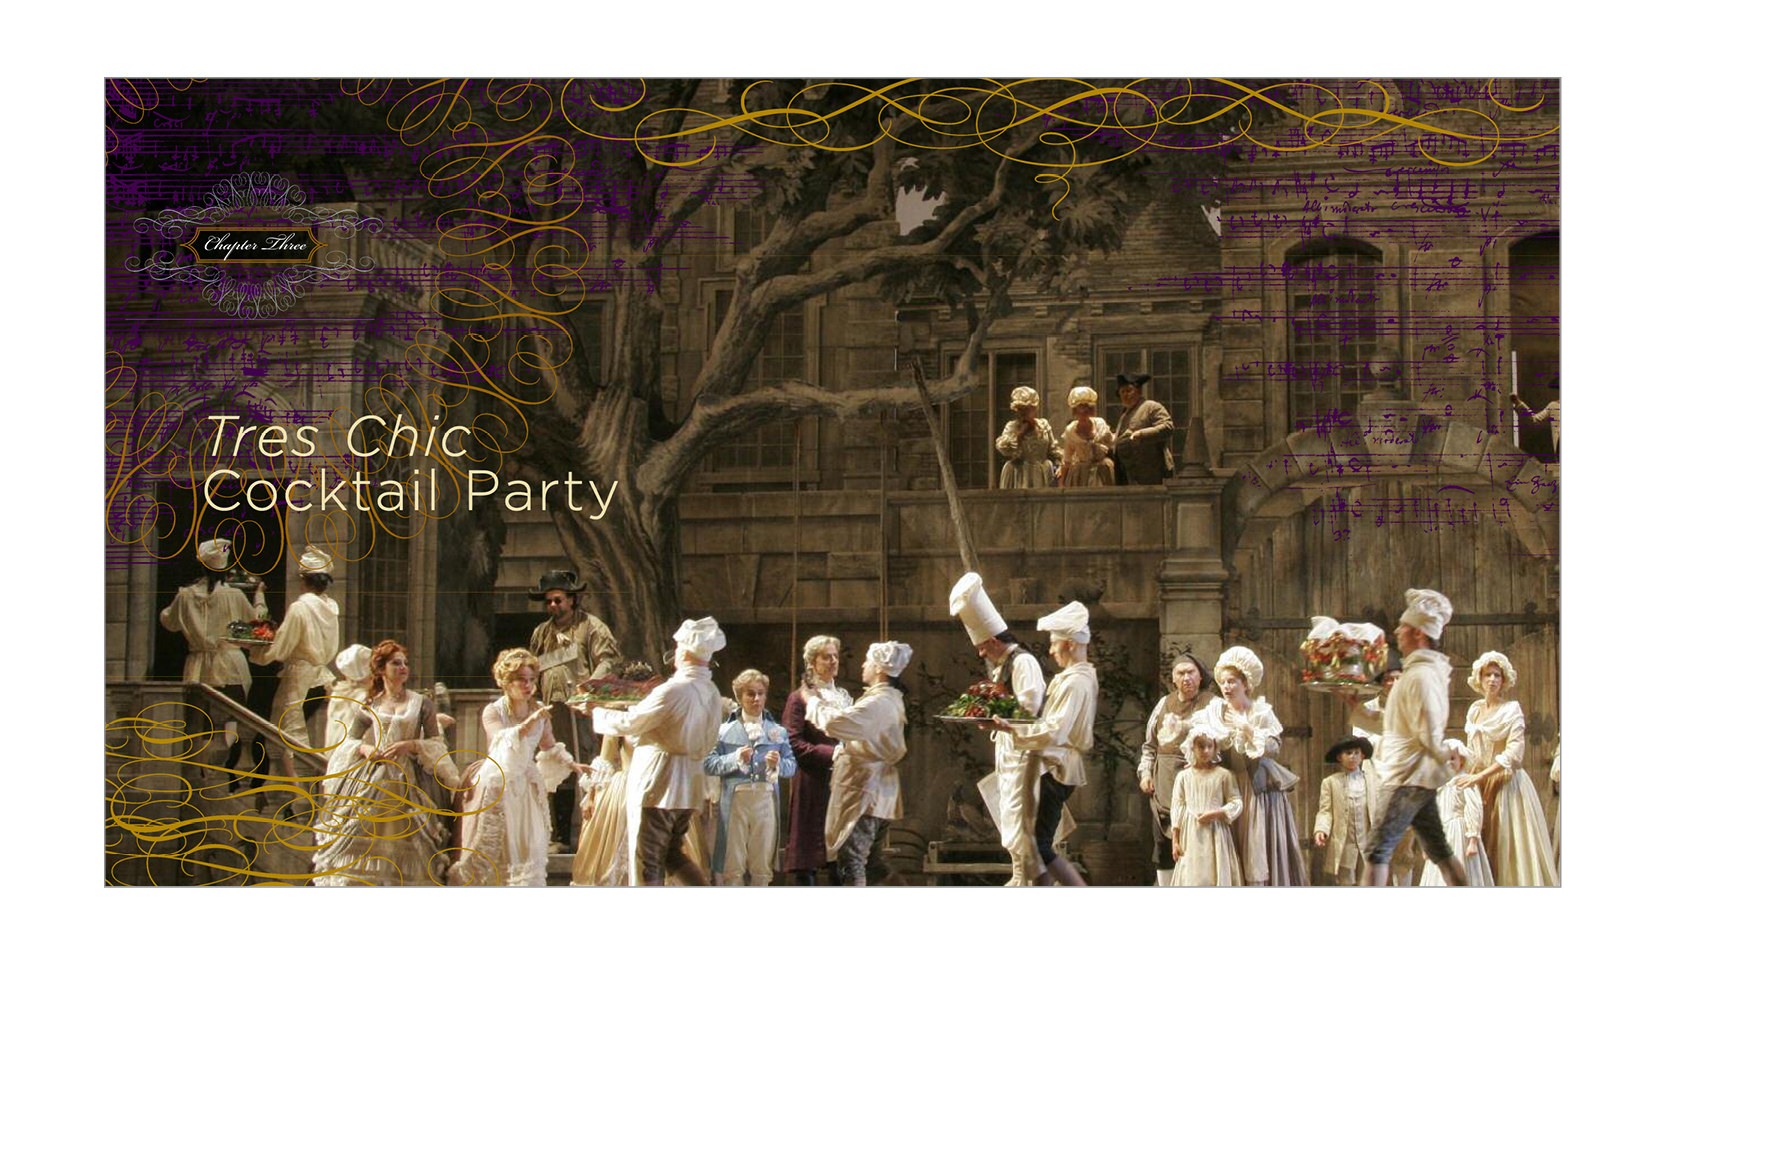 Chapter opener -  All openers featured large-scale scenes from Metropolitan Opera performances